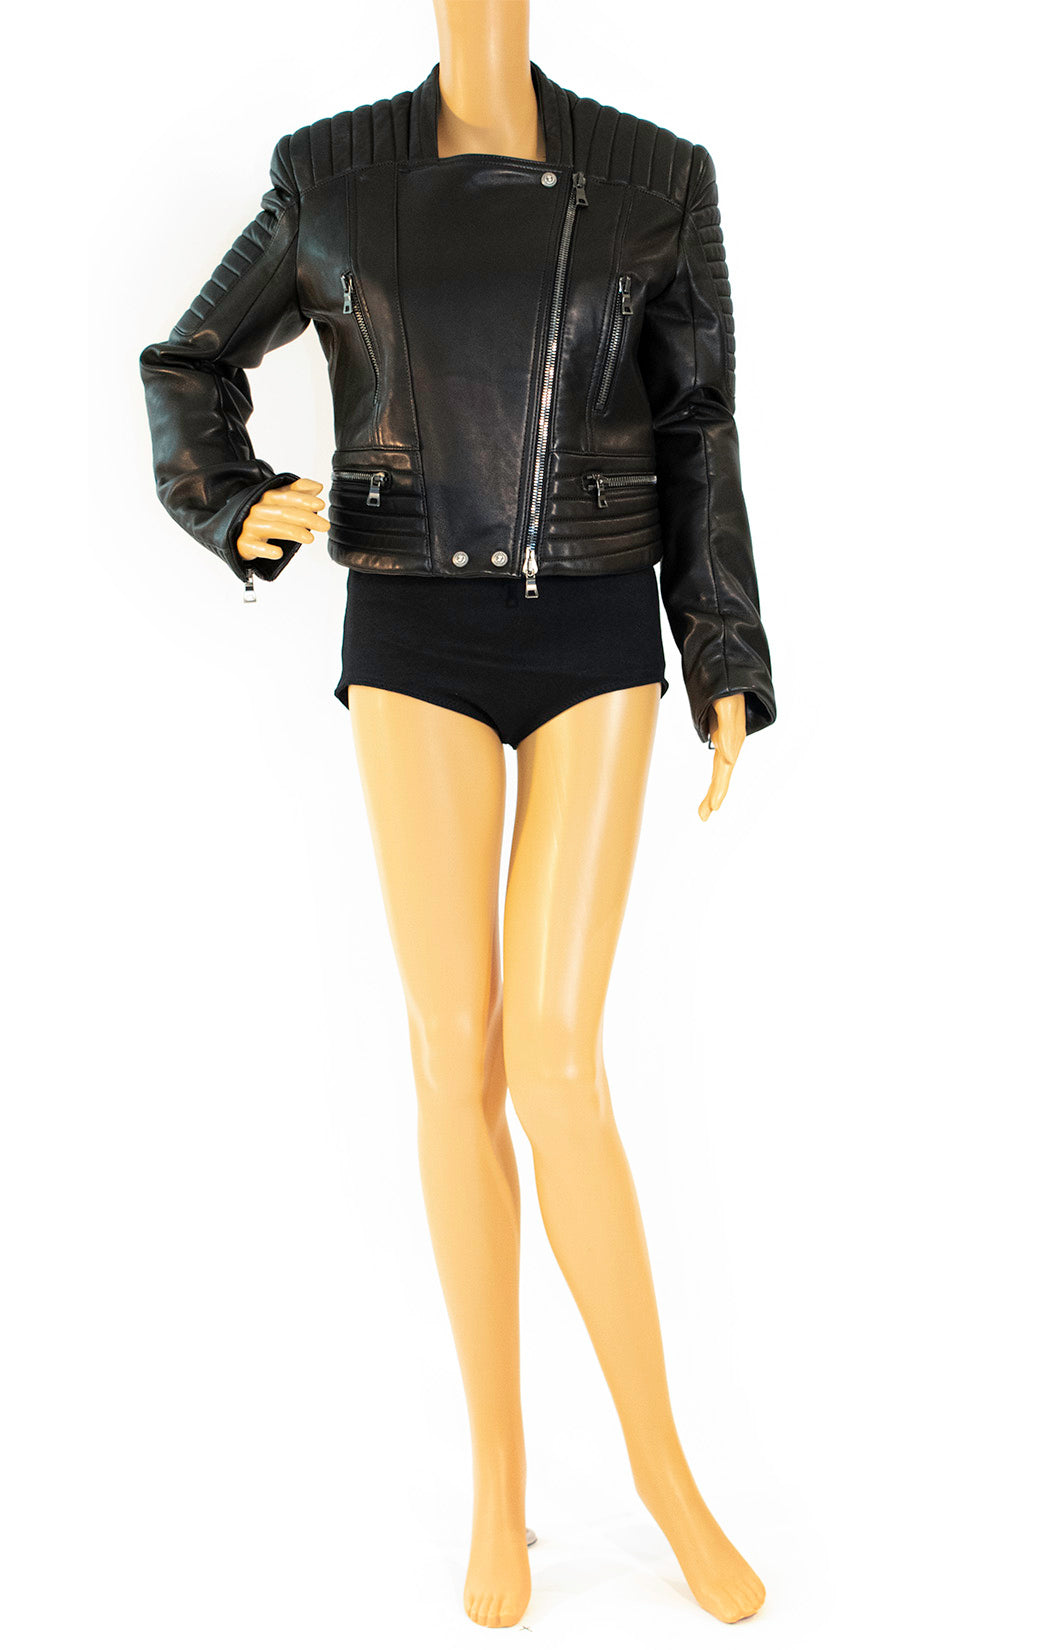 Front view of BALMAIN Leather jacket Size: FR 42 (comparable to US size 10) fits more like a size 8